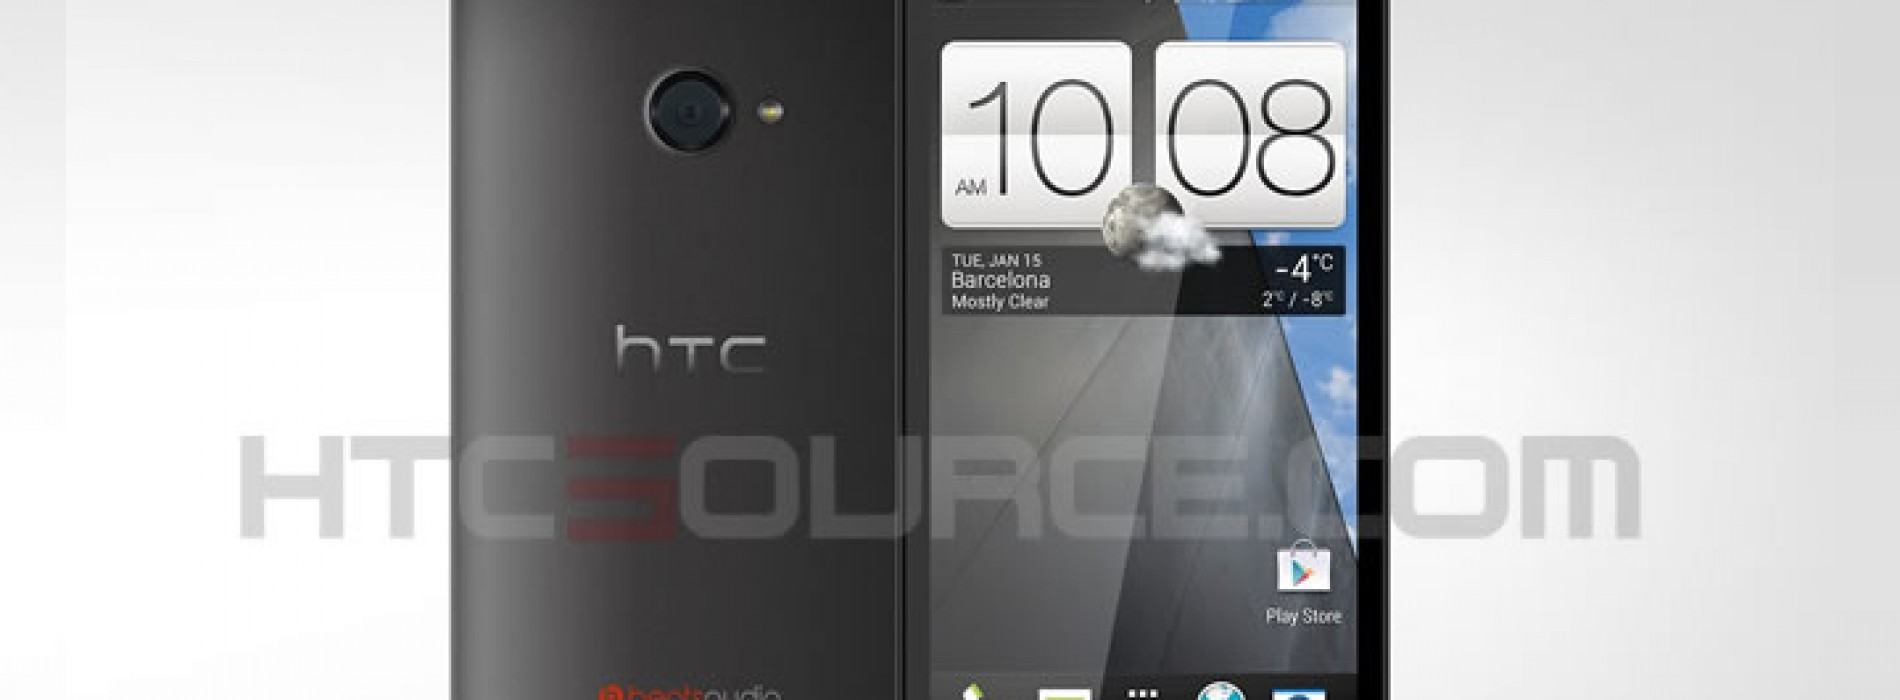 Now this is what the HTC M7 looks like